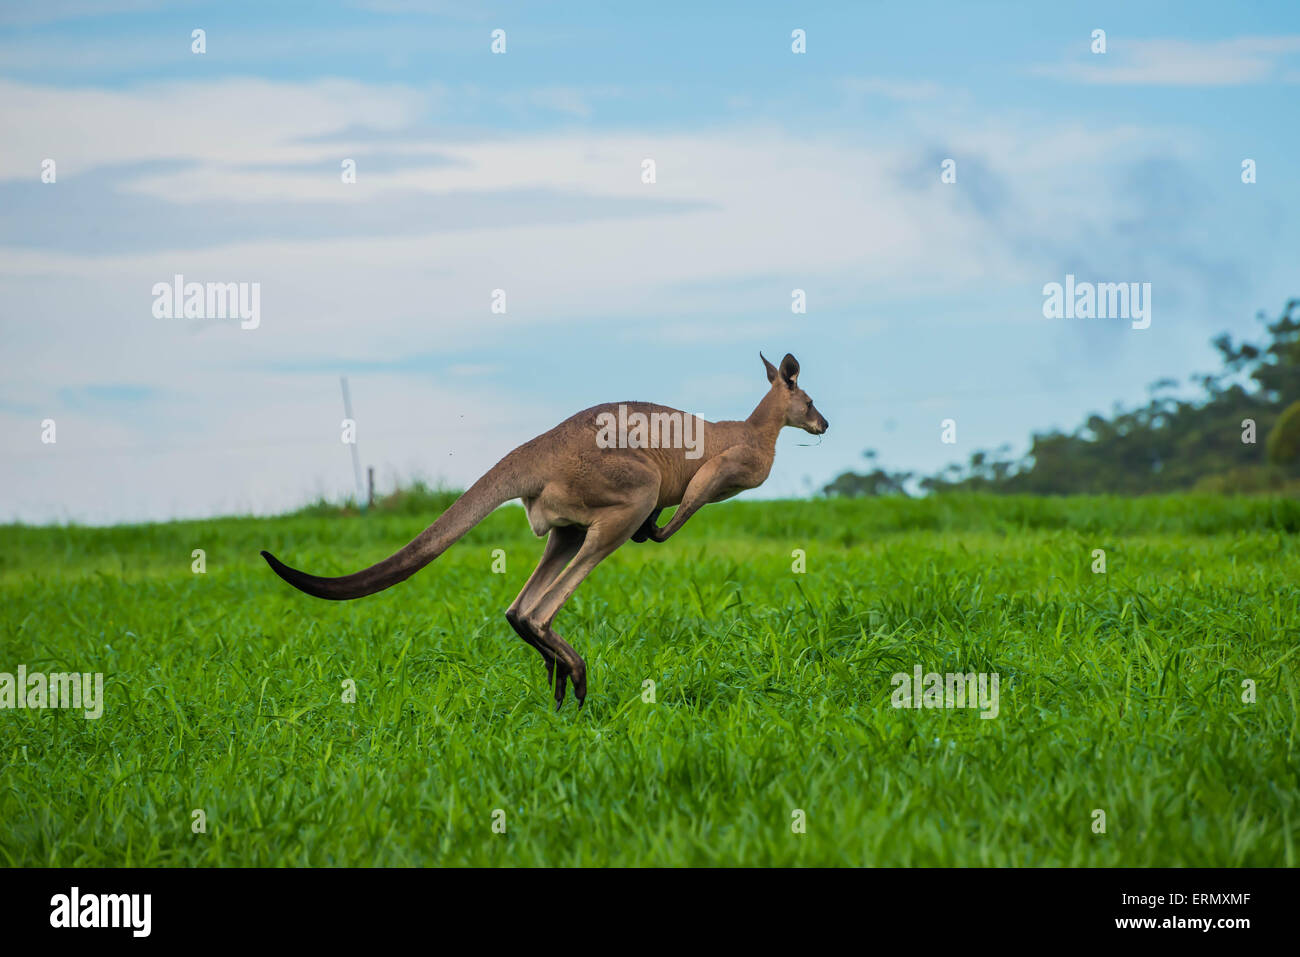 Easter Grey Kangaroo hopping - Stock Image